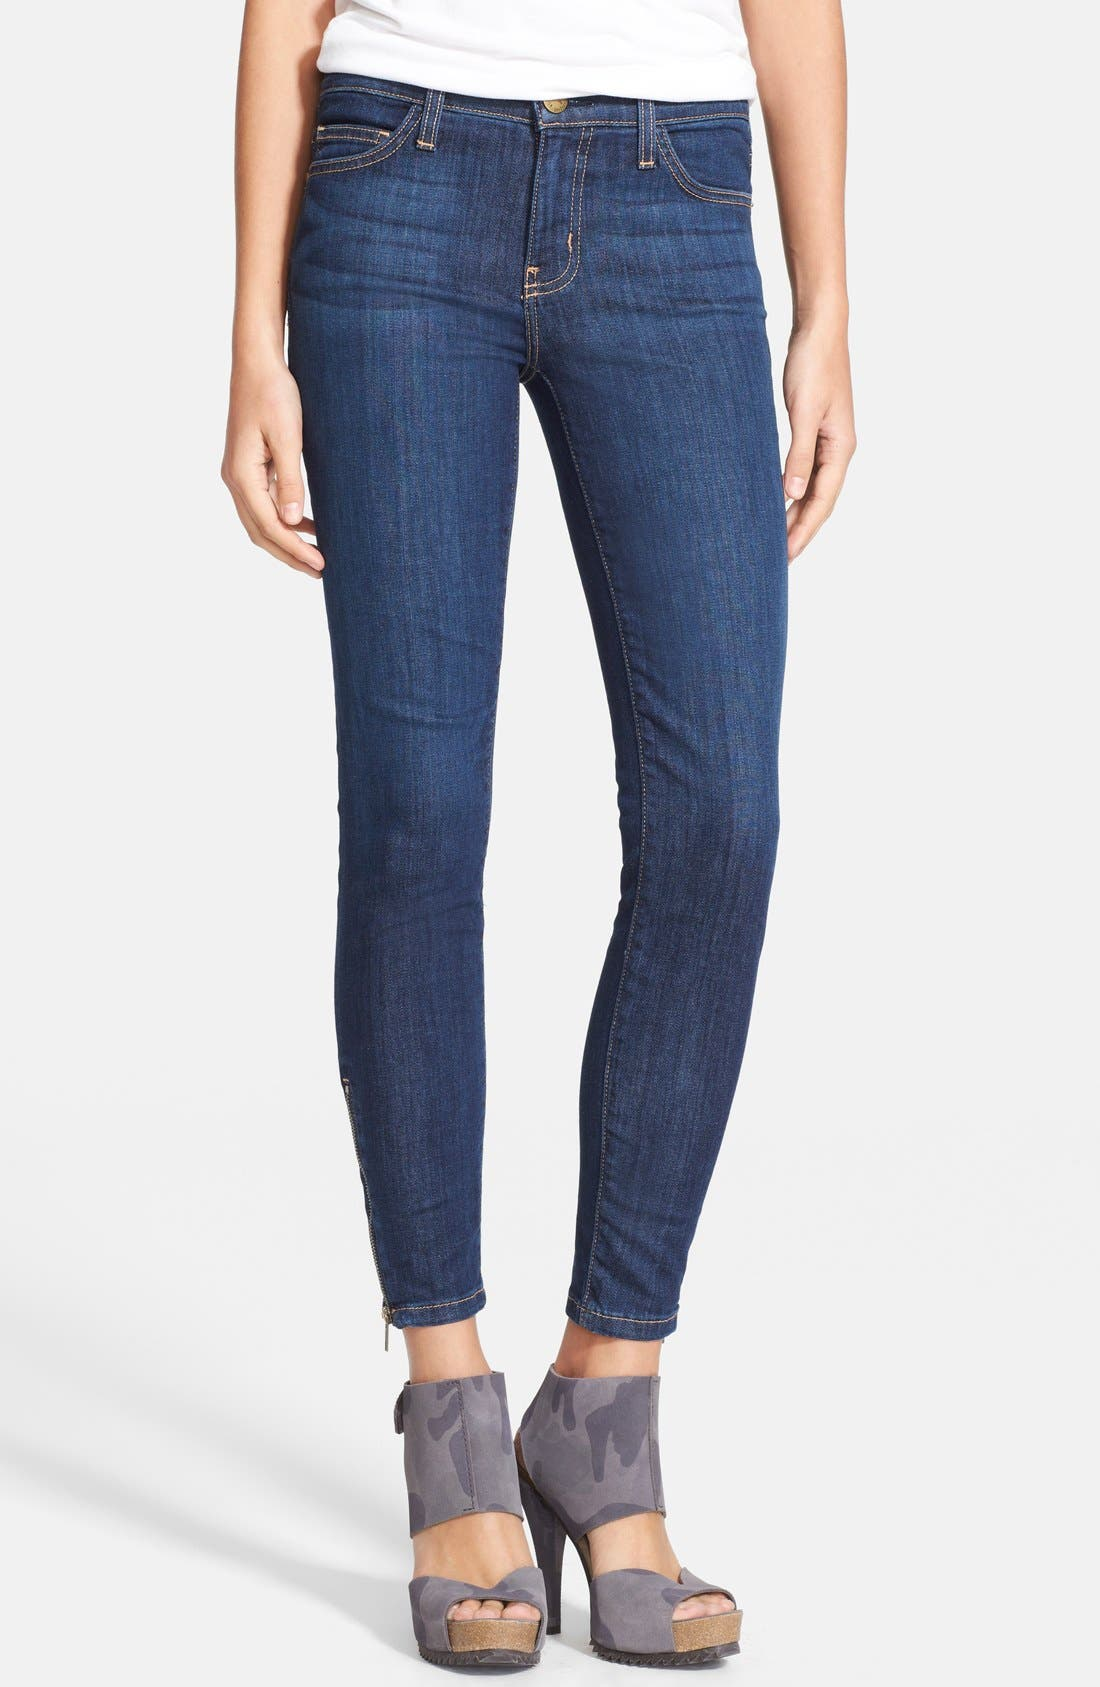 Main Image - Current/Elliott 'The Zip Stiletto' Skinny Jeans (Bowler)